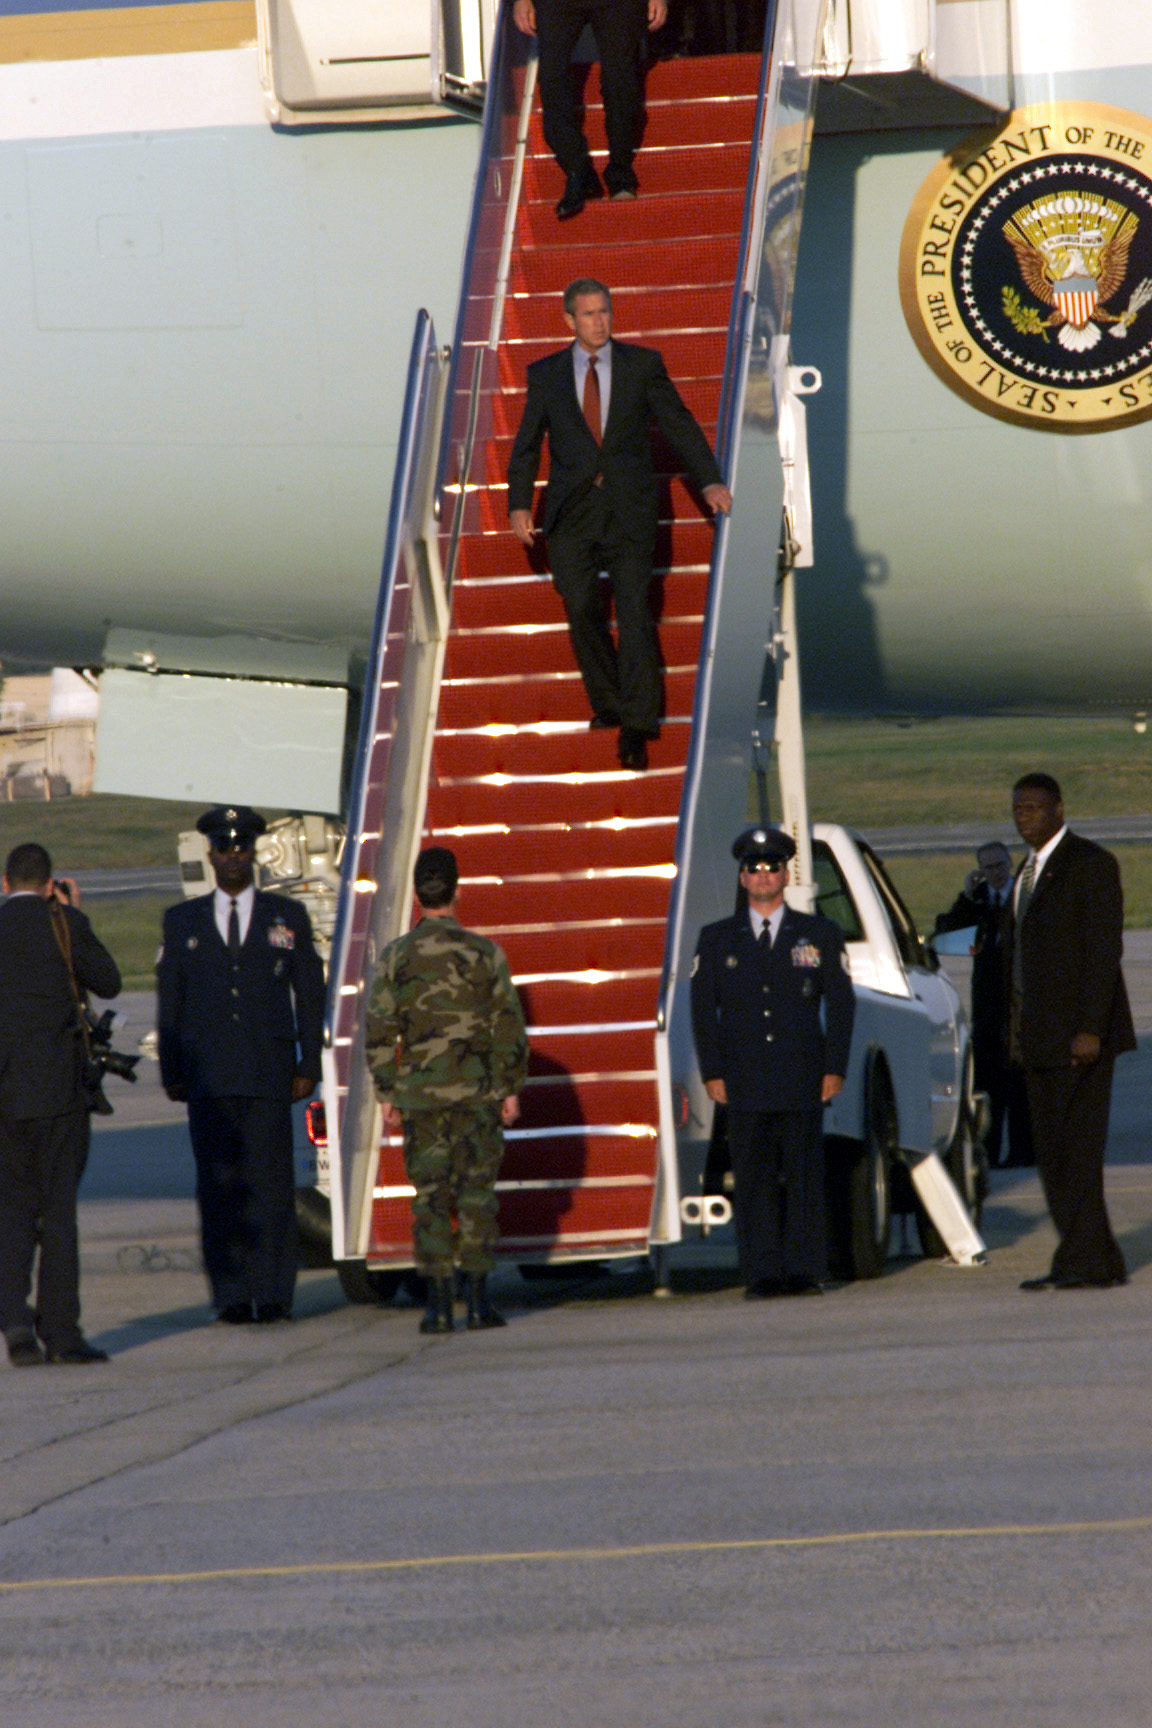 Betty ong s 9 11 call from flight 11 youtube - President George W Bush Disembarks From Air Force One After Landing In Maryland To Board Marine One For The White House